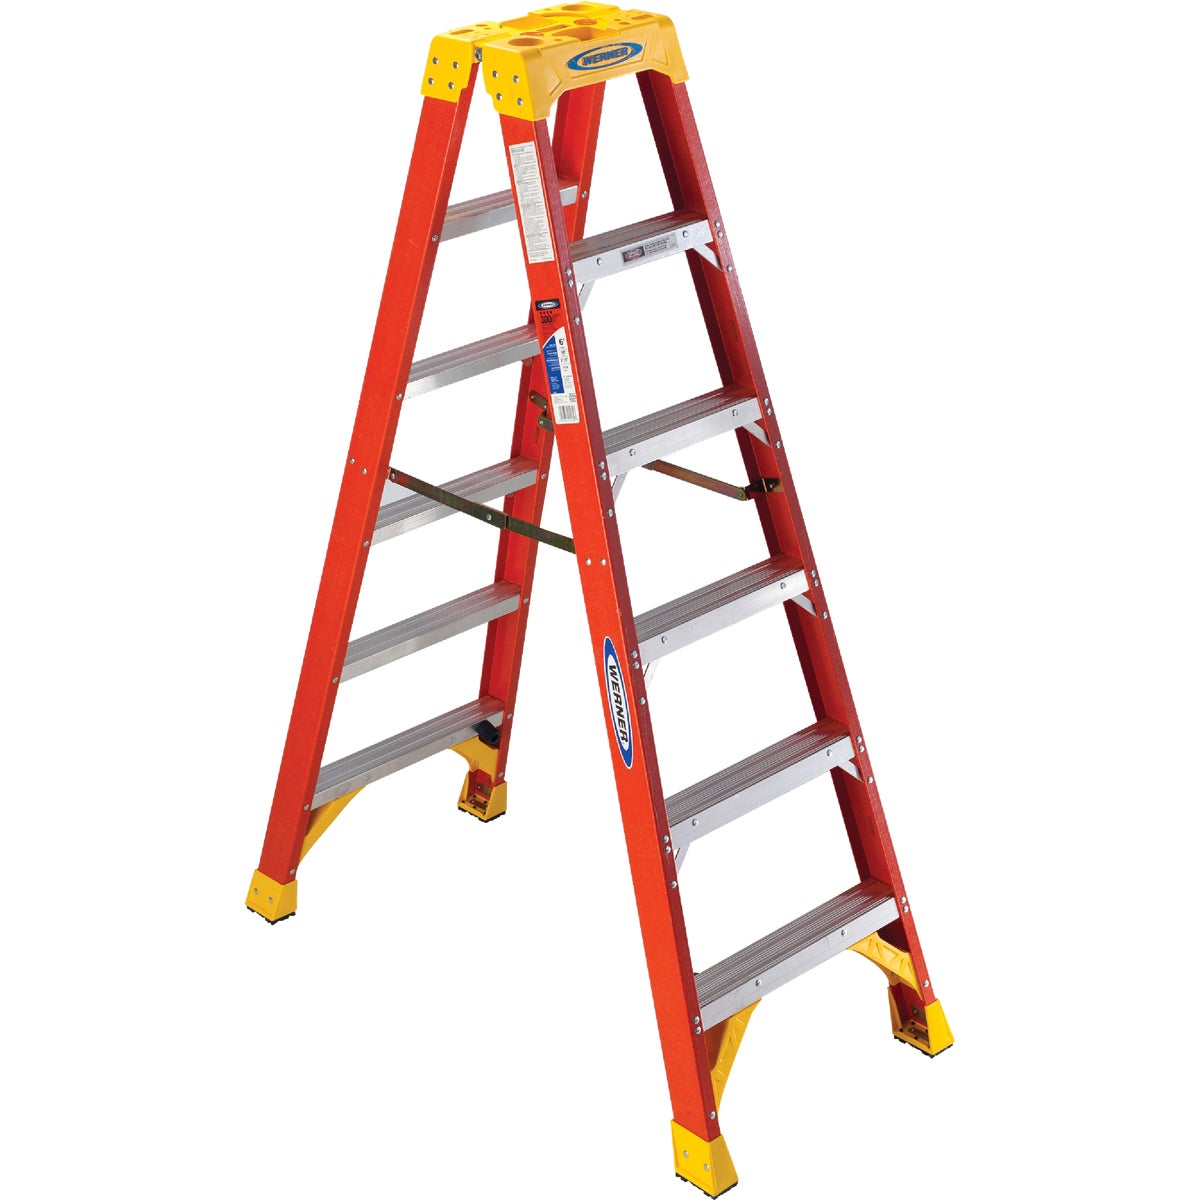 T-1A 6' TWIN STEPLADDER - T6206 by Werner Ladder